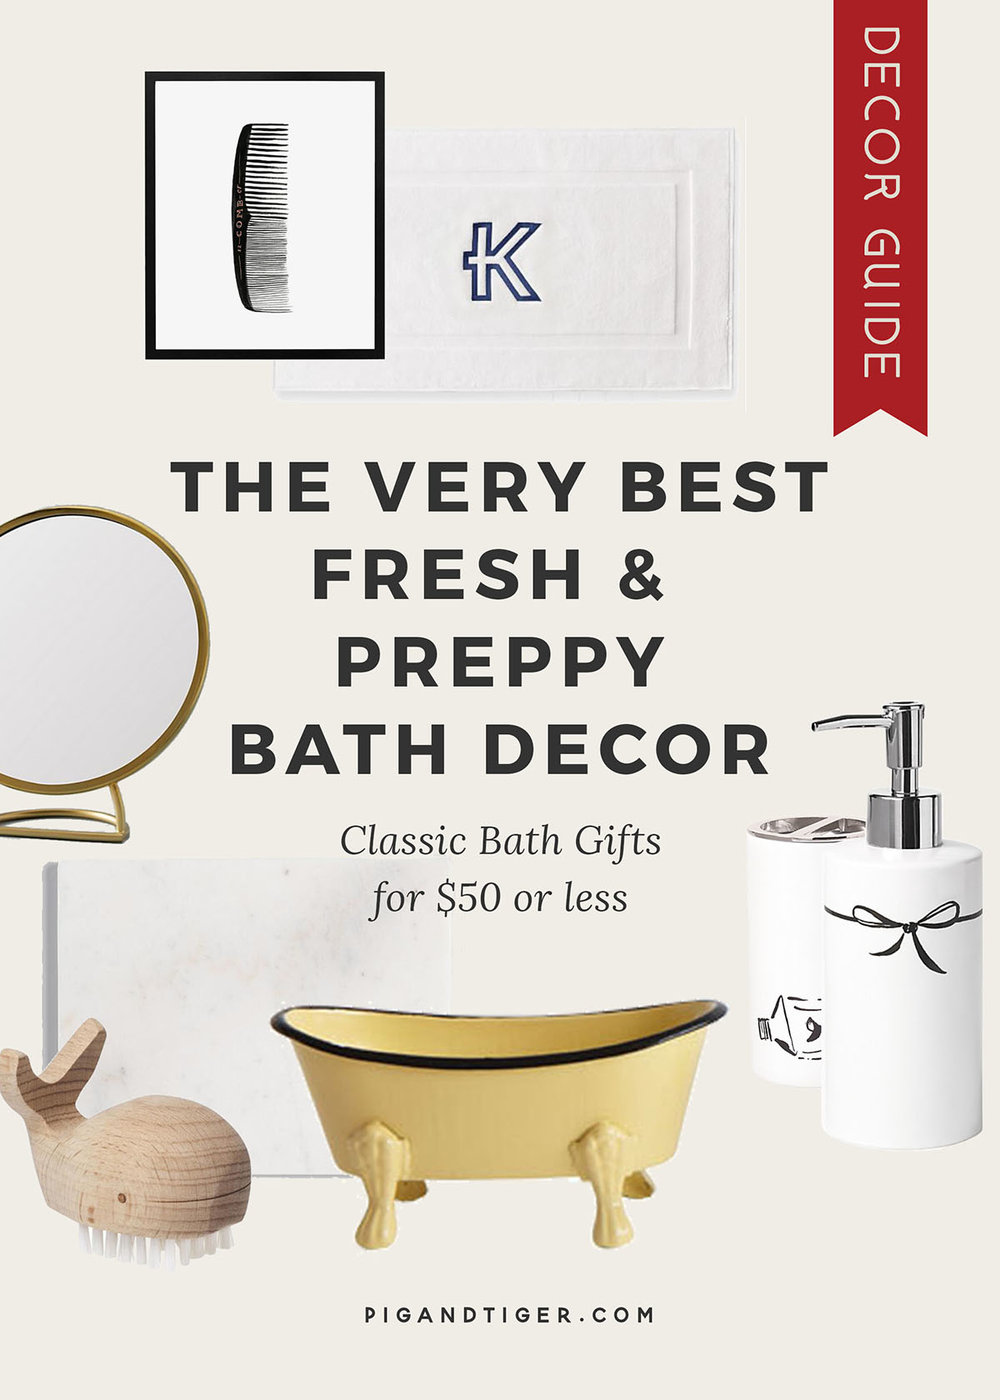 The very best Fresh and Preppy bath decor gift guide ($50 or less) - CLICK FOR DETAILS